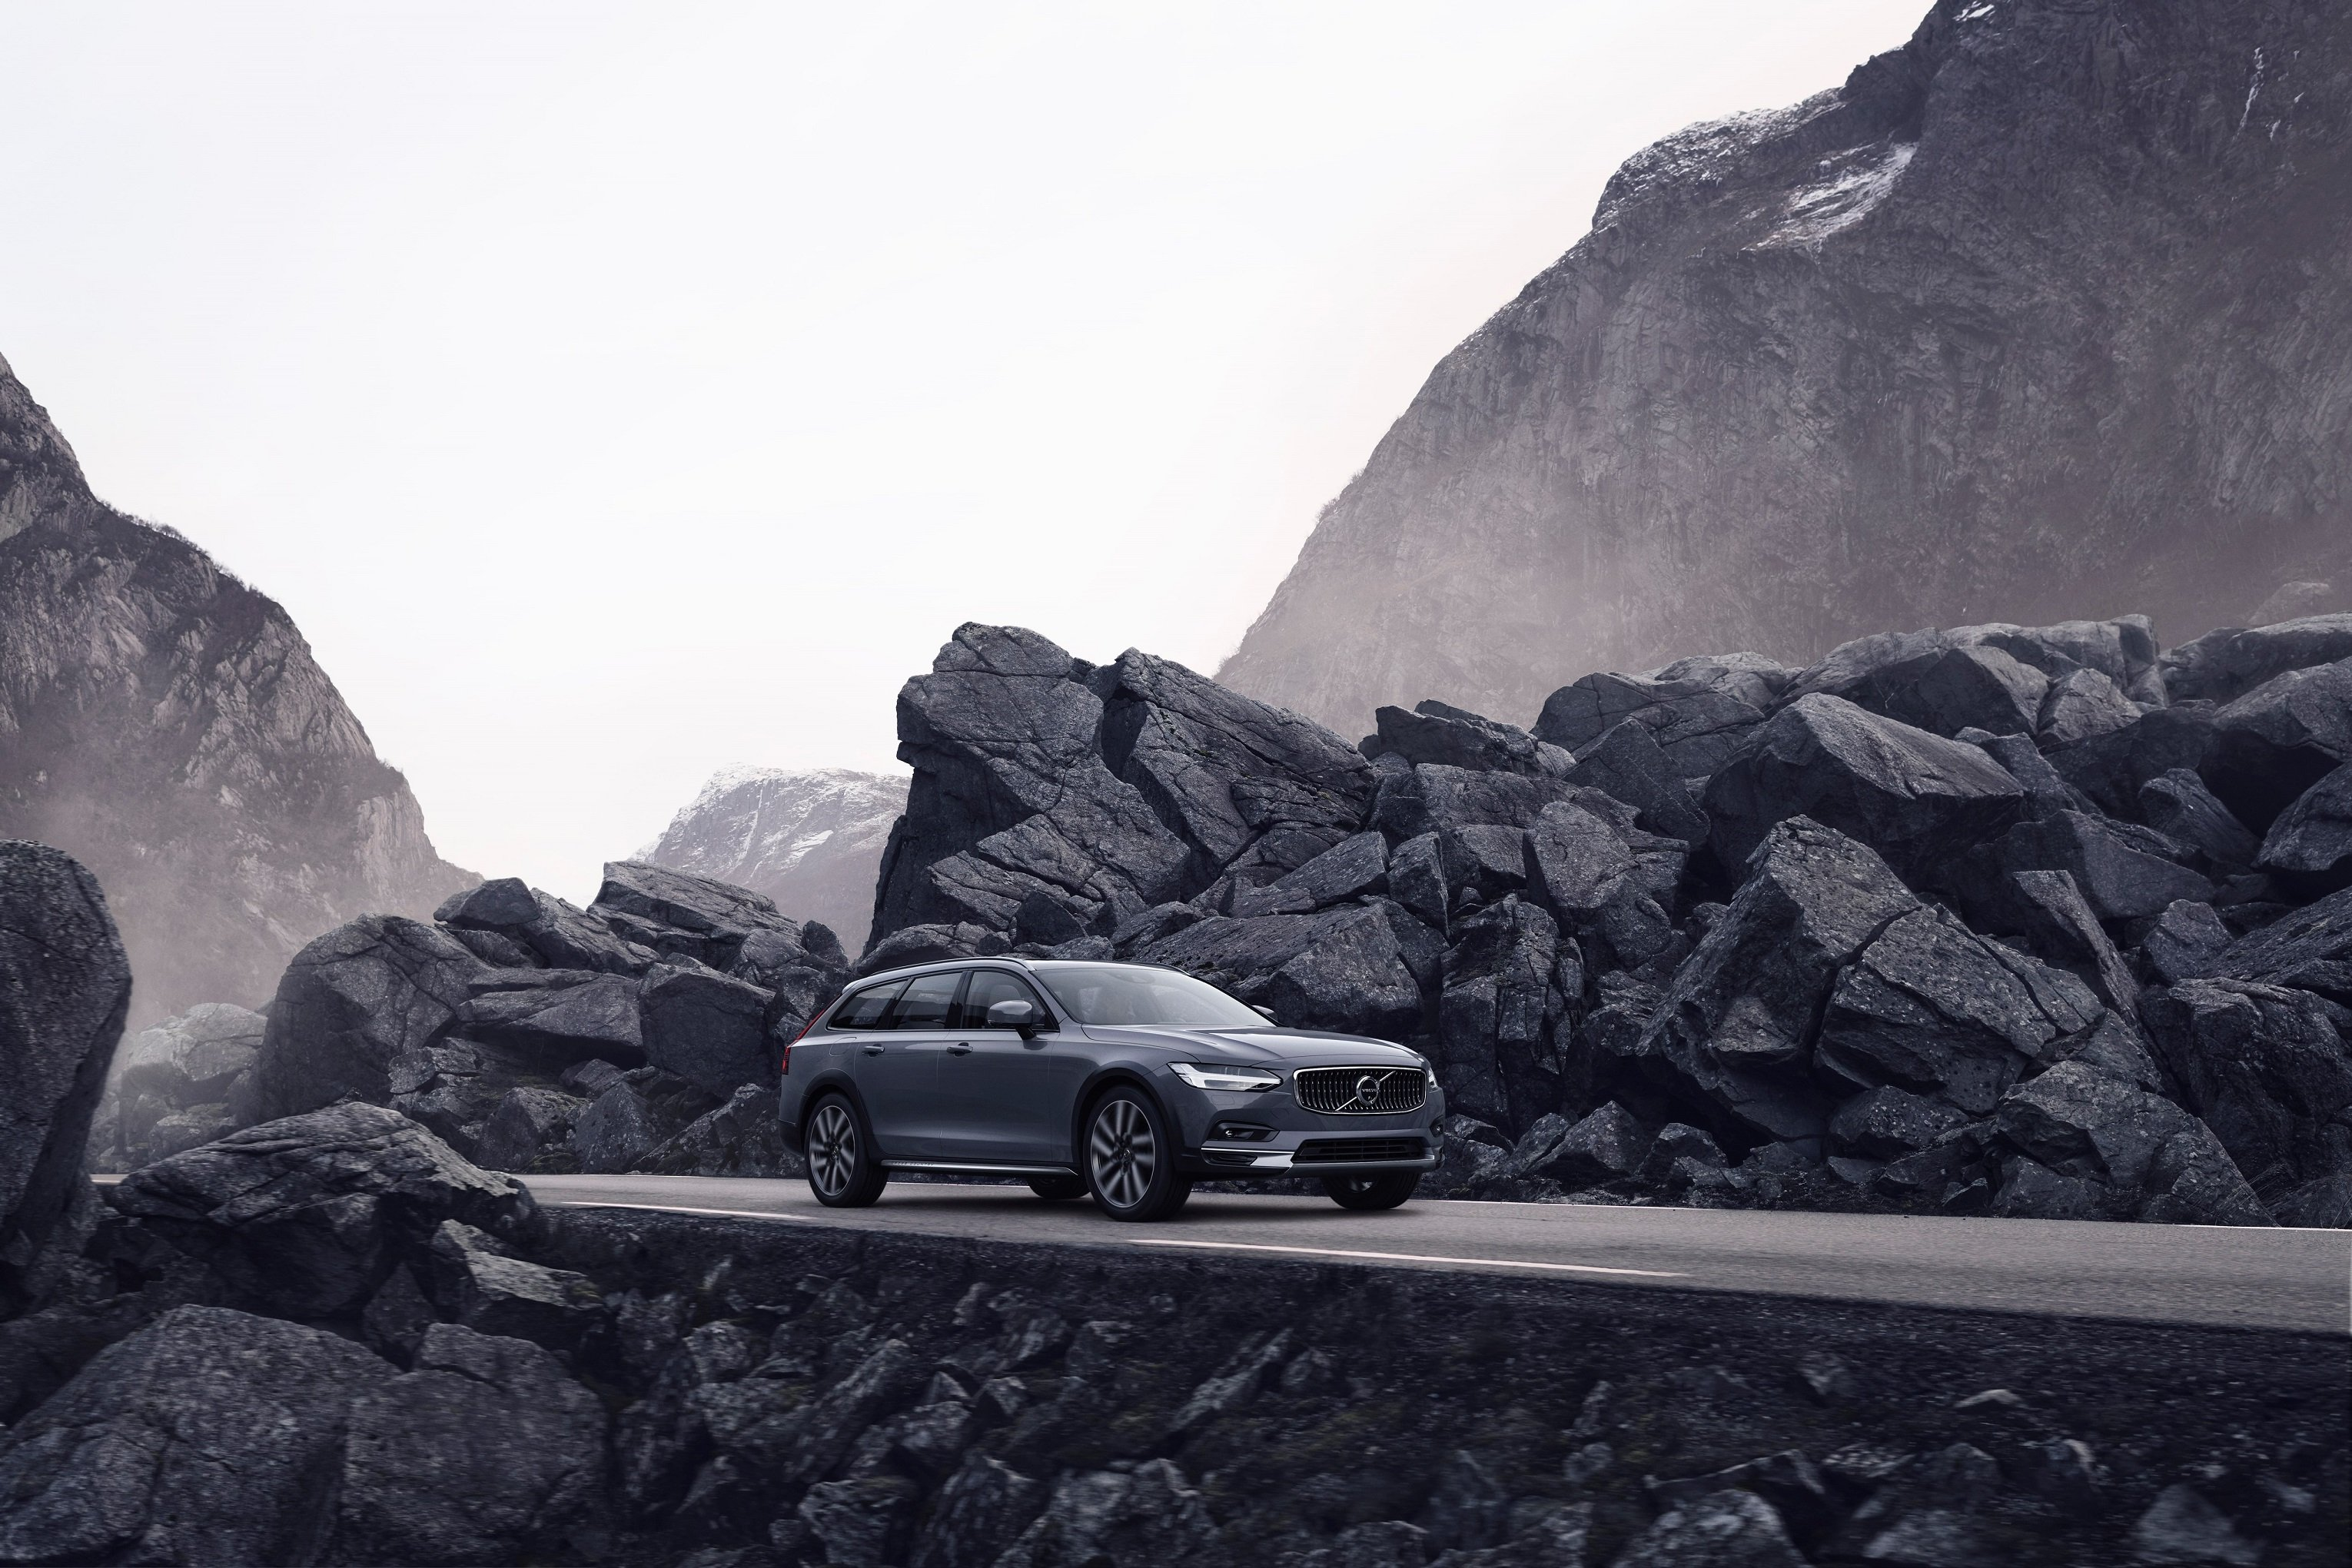 The refreshed Volvo V90 B6 AWD Cross Country in Thunder Grey